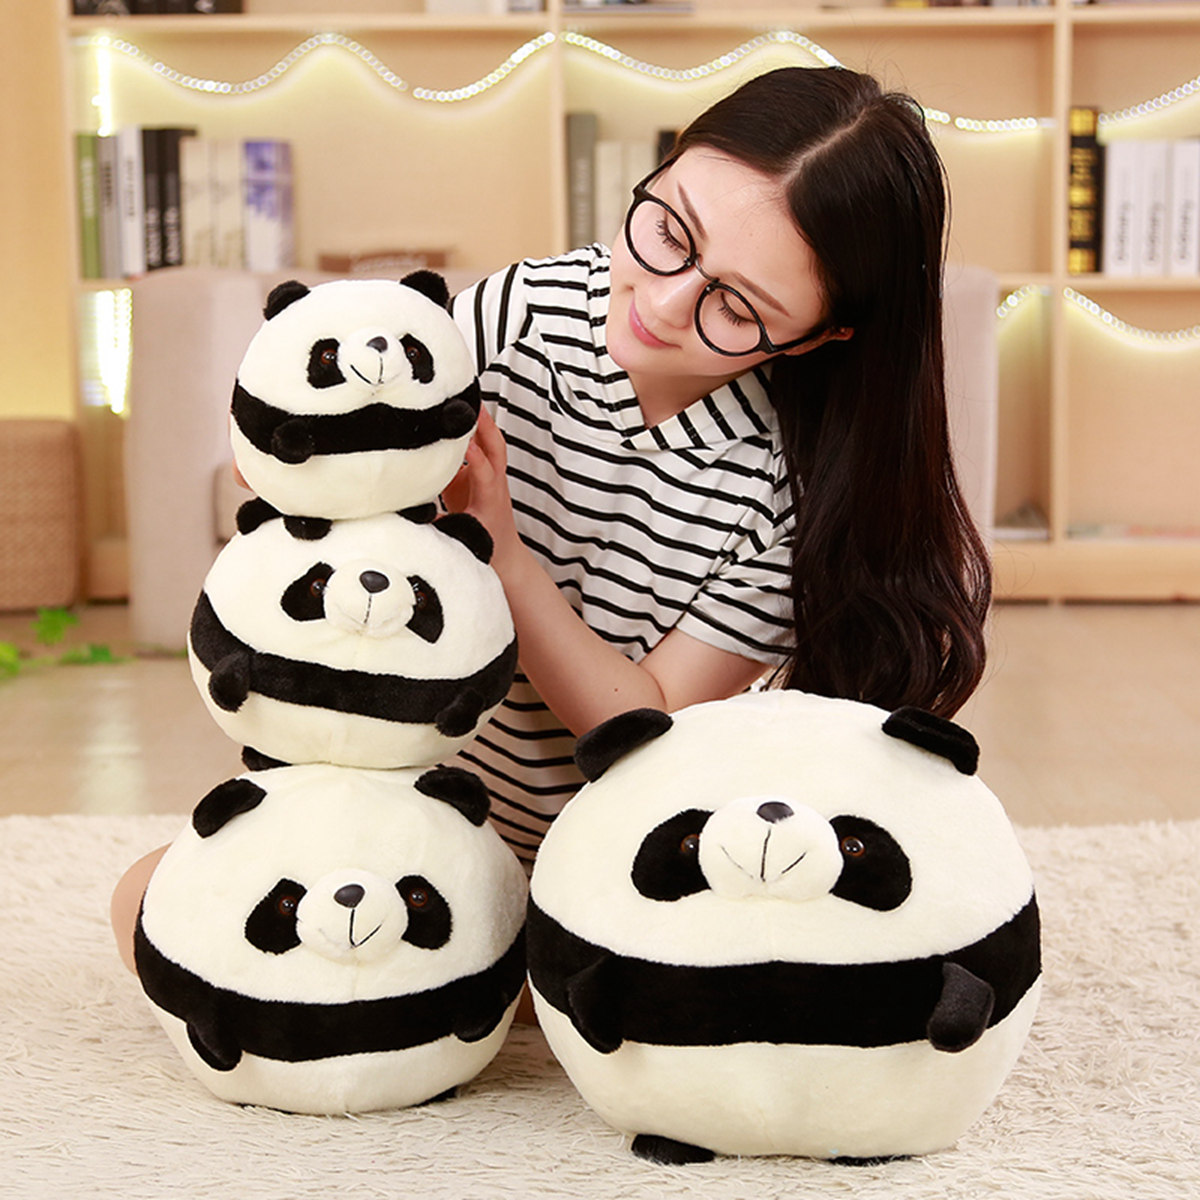 Round Spherical Black And White Panda Cute Kawaii Doll Plush Toy Pillow Children Birthday Gift Soft Doll Toys For Children Gifts